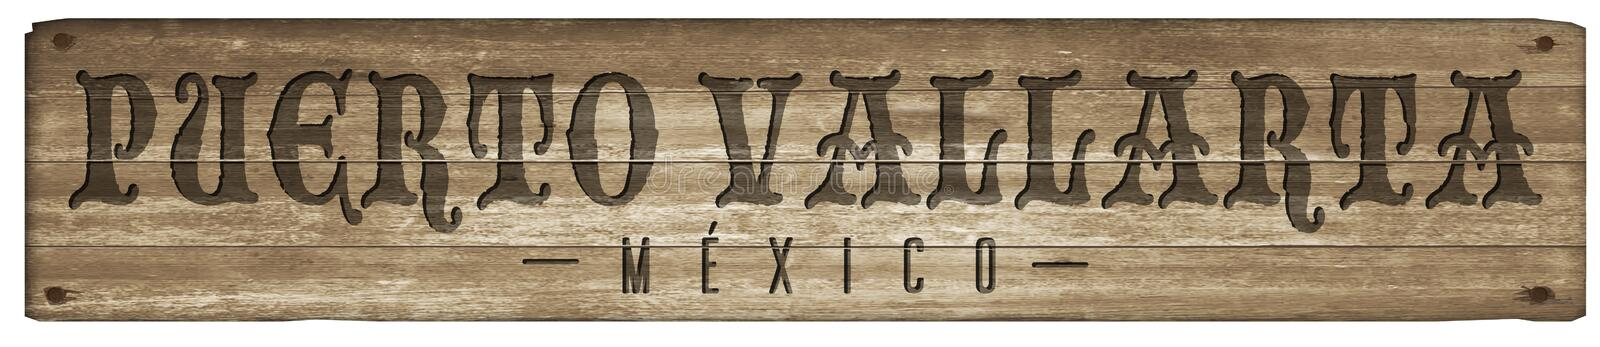 Puerto Vallarta Mexico Wood sign royalty free stock images